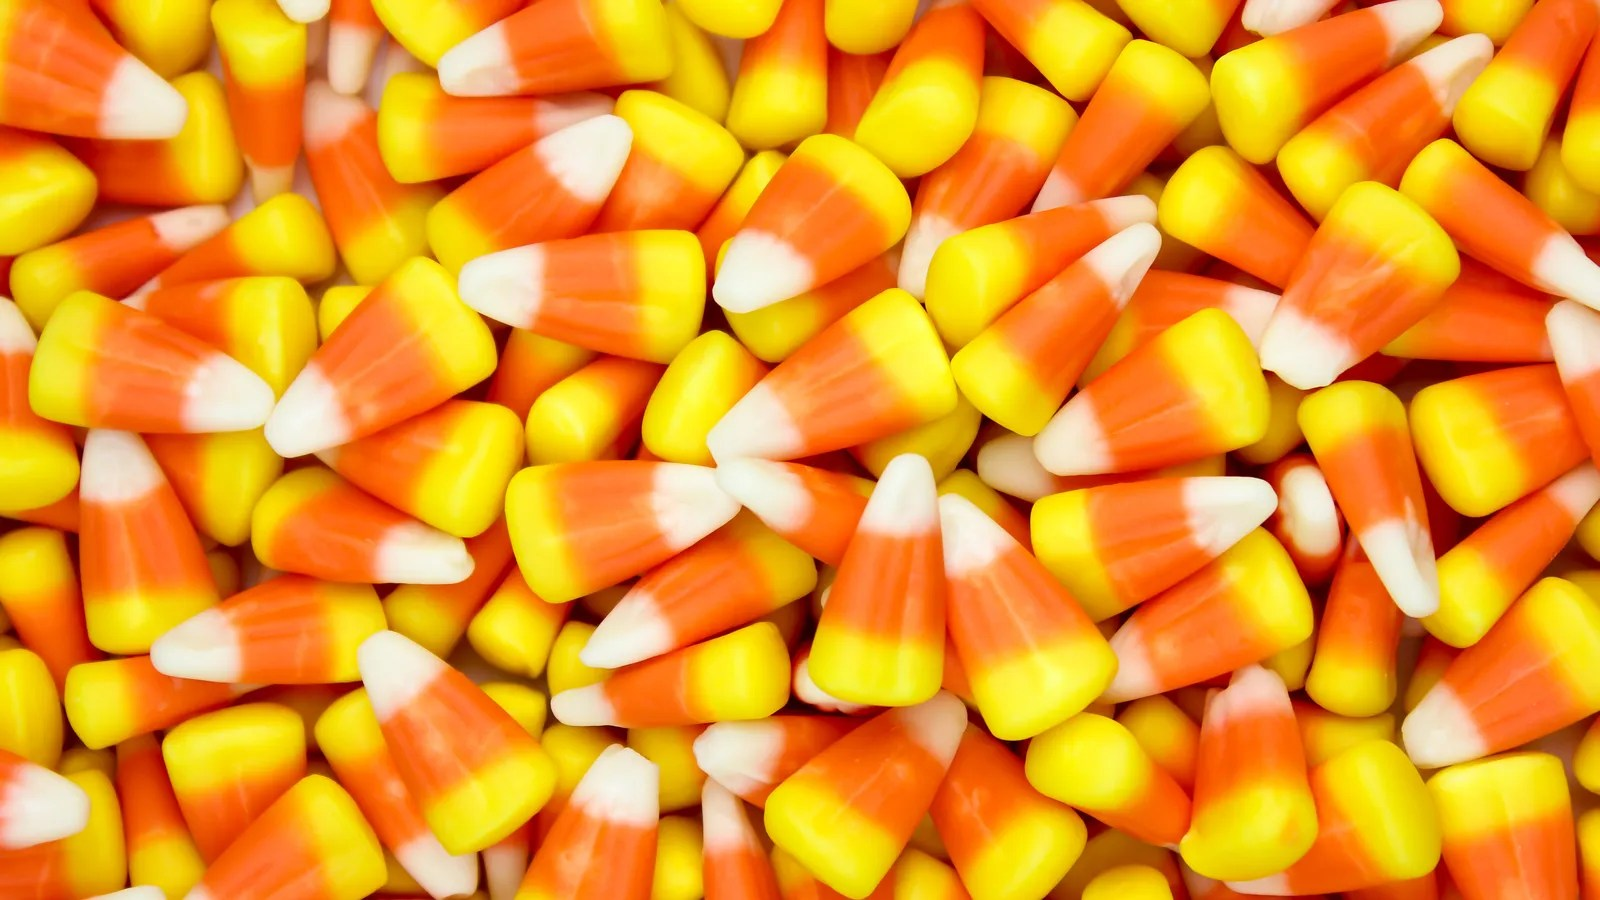 Divided We Fall Wallpaper Is Candy Corn Delicious Or Satan S Earwax